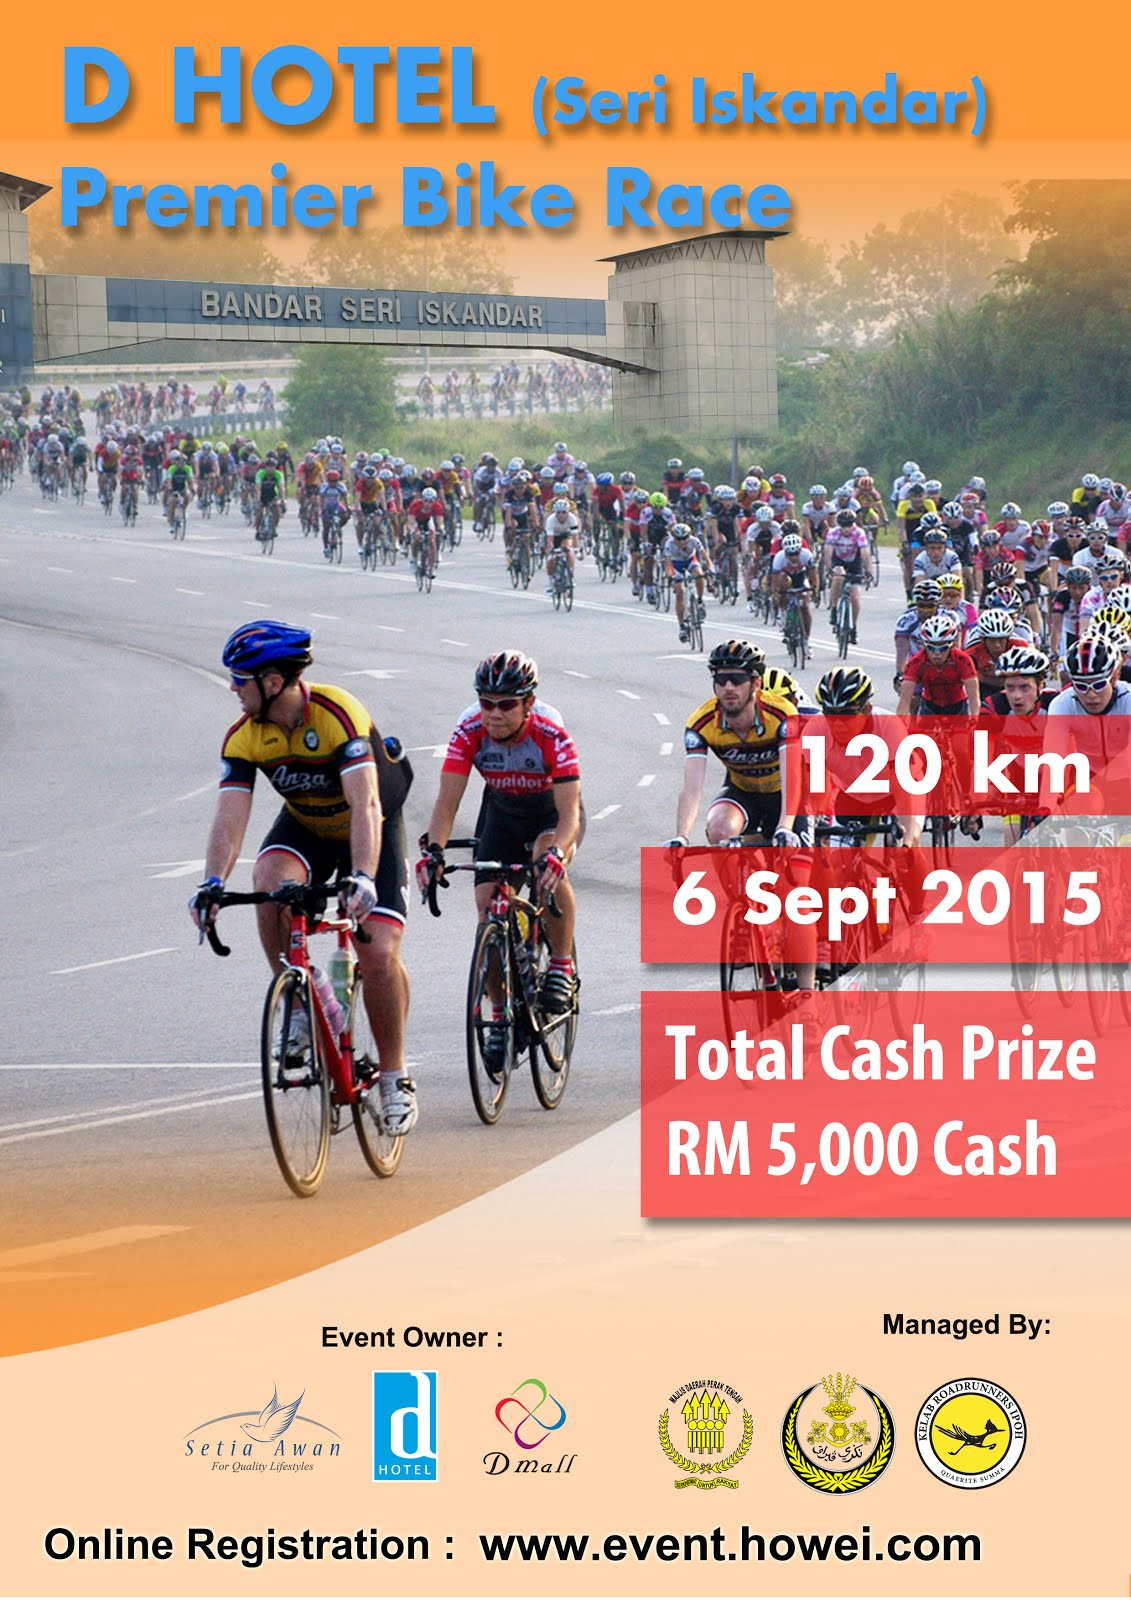 ONLINE REGISTRATION : D HOTEL PREMIER BIKE RACE